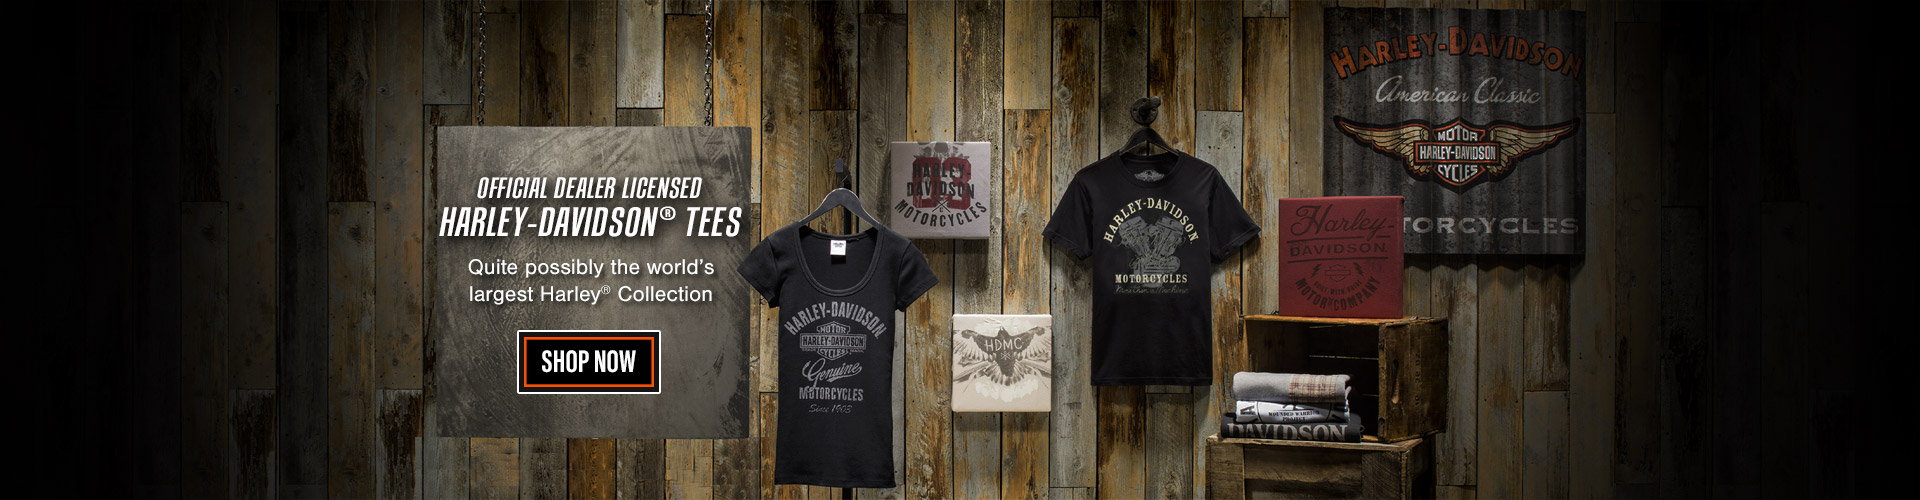 Shop Wisconsin Harley-Davidson for the World's Largest t-Shirt Collection